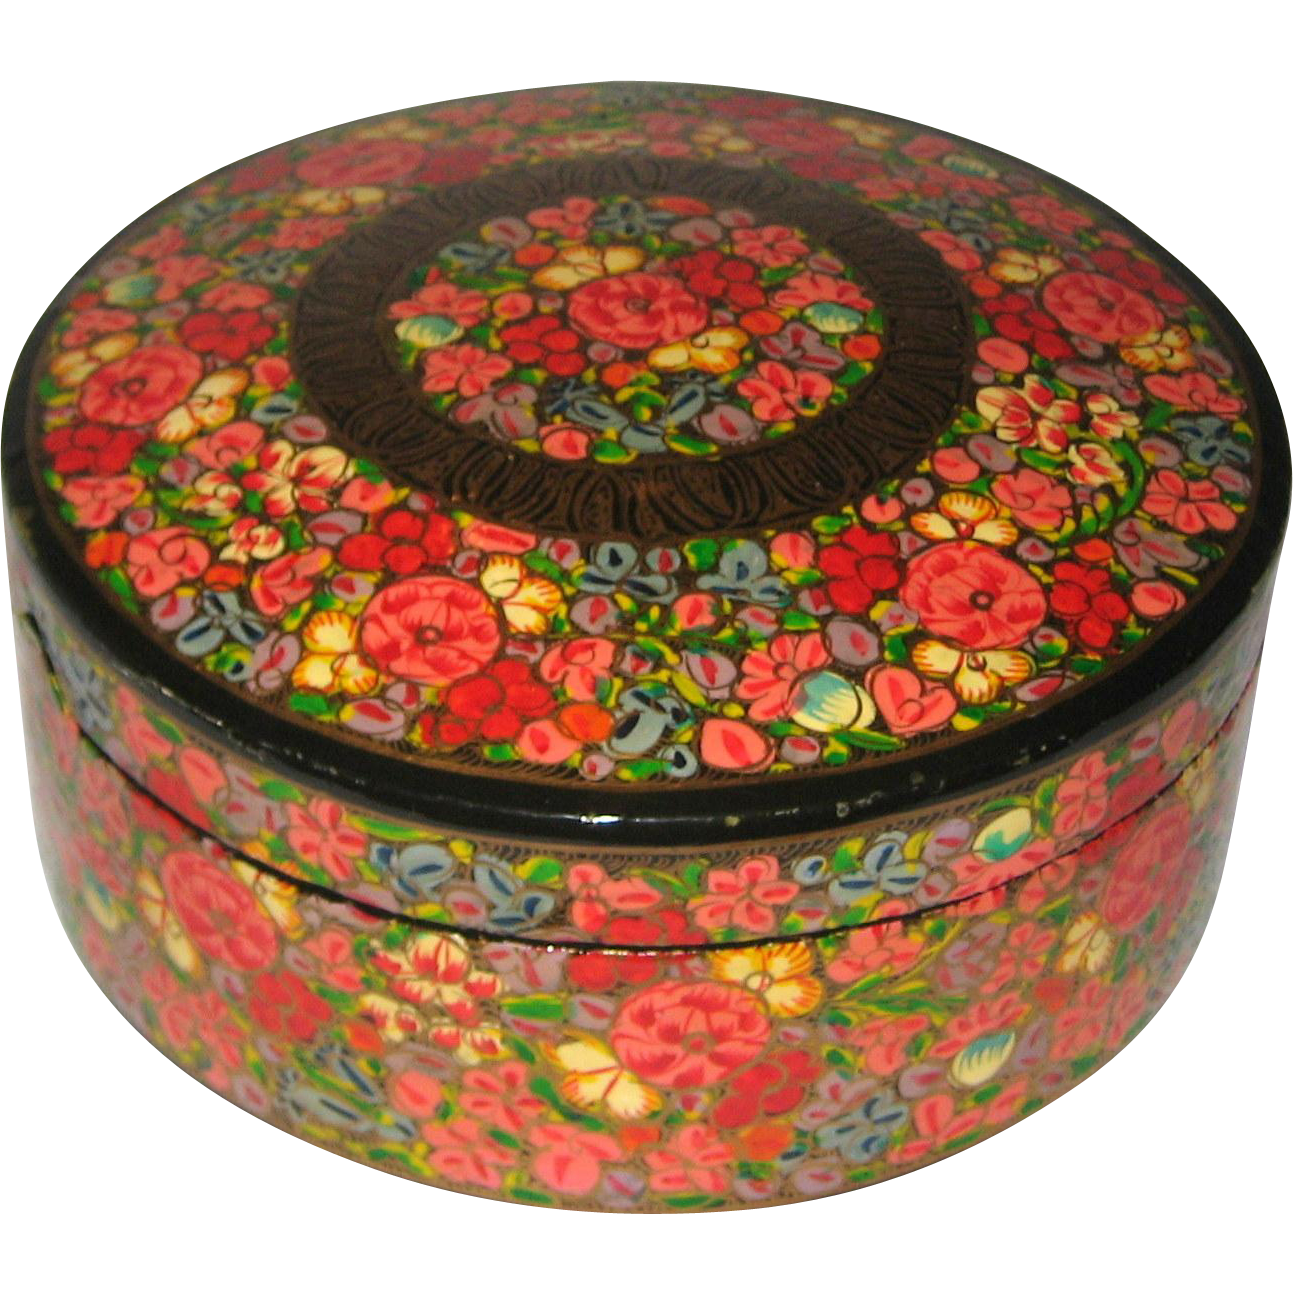 papier cache Kashmir India Papier-Mache Cache Box Hand Painted in Bright Floral Design